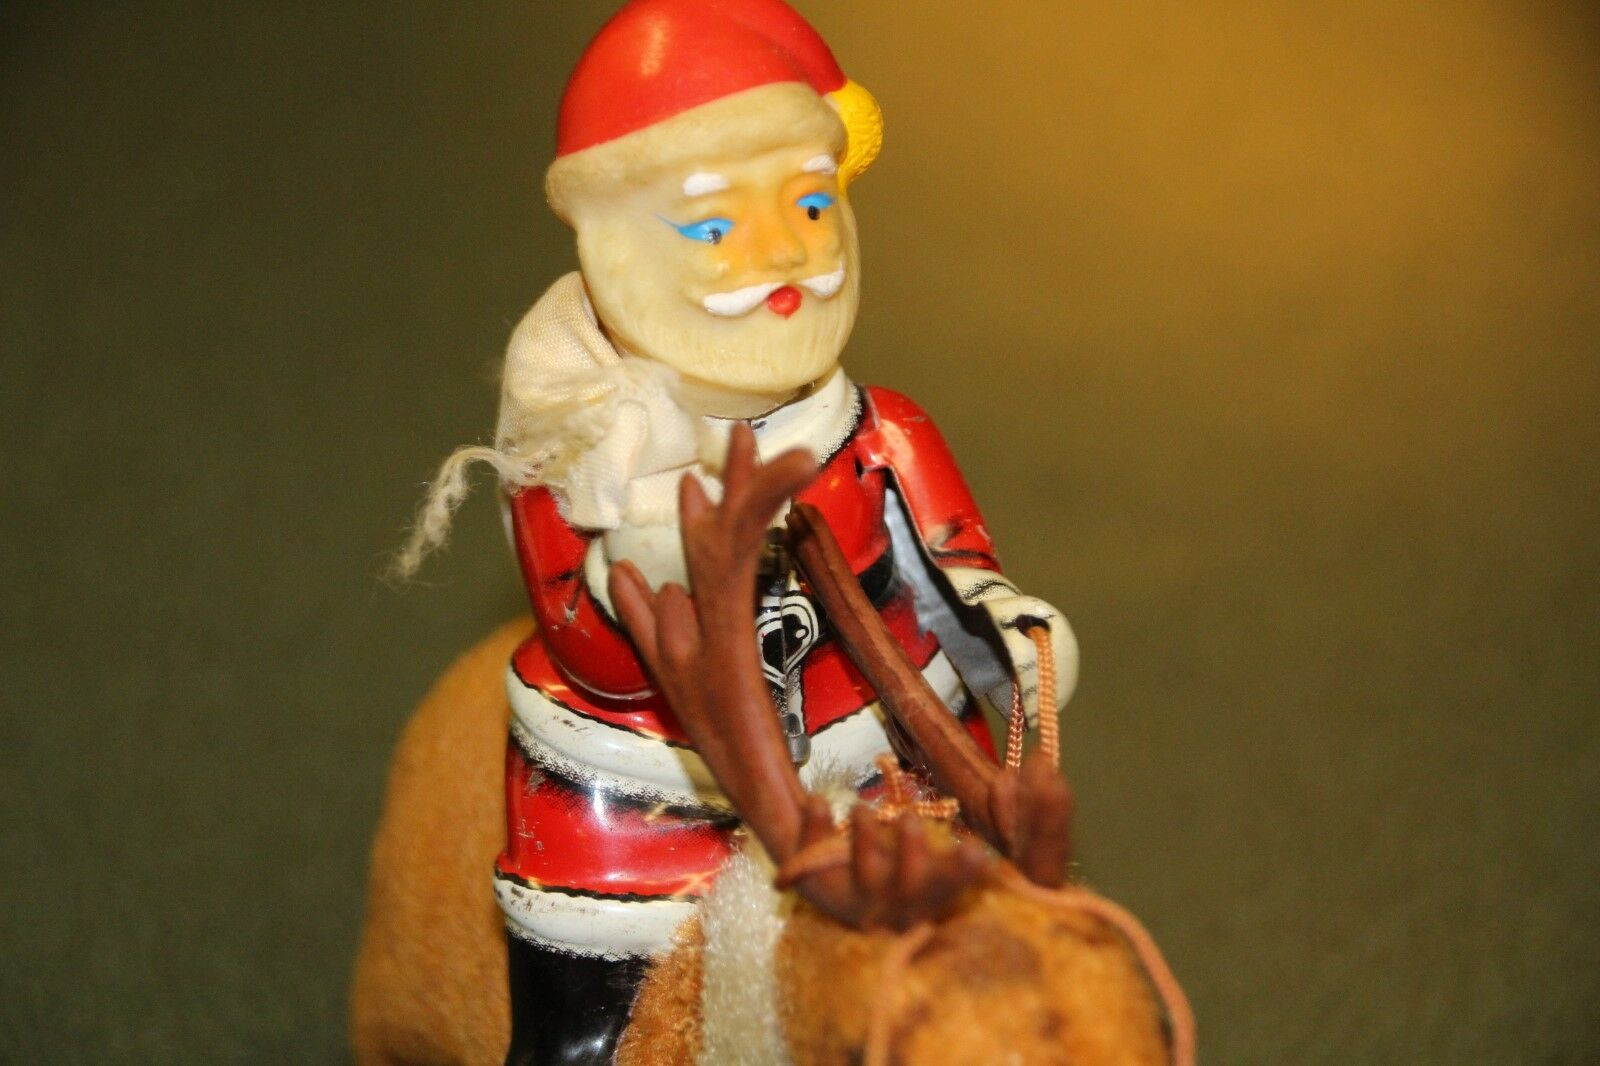 VINTAGE MADE IN JAPAN SANTA RIDING REINDEER WINDUP TOY-1970